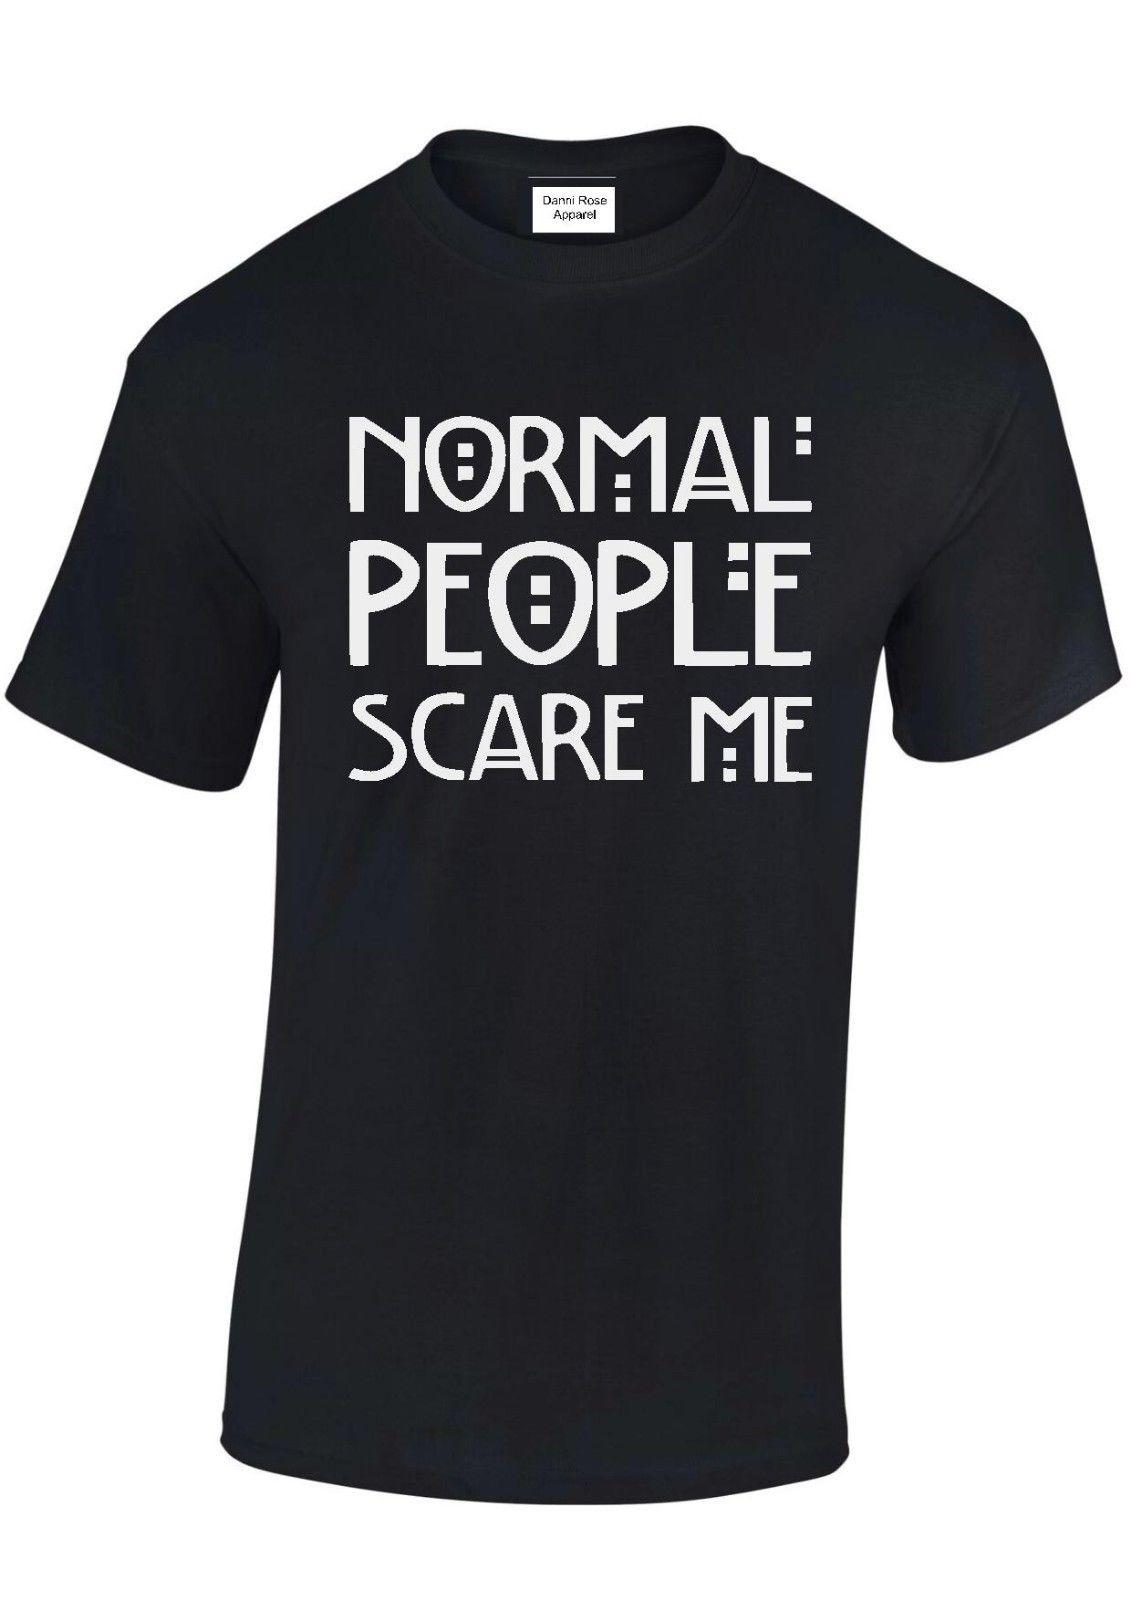 5776e21fc Normal People Scare Me Tshirt,Tee Funny T Shirt Adults Mens Womens Funny  Unisex Casual Tee Gift Ordering T Shirts Rude T Shirt From Noveltgifts, ...